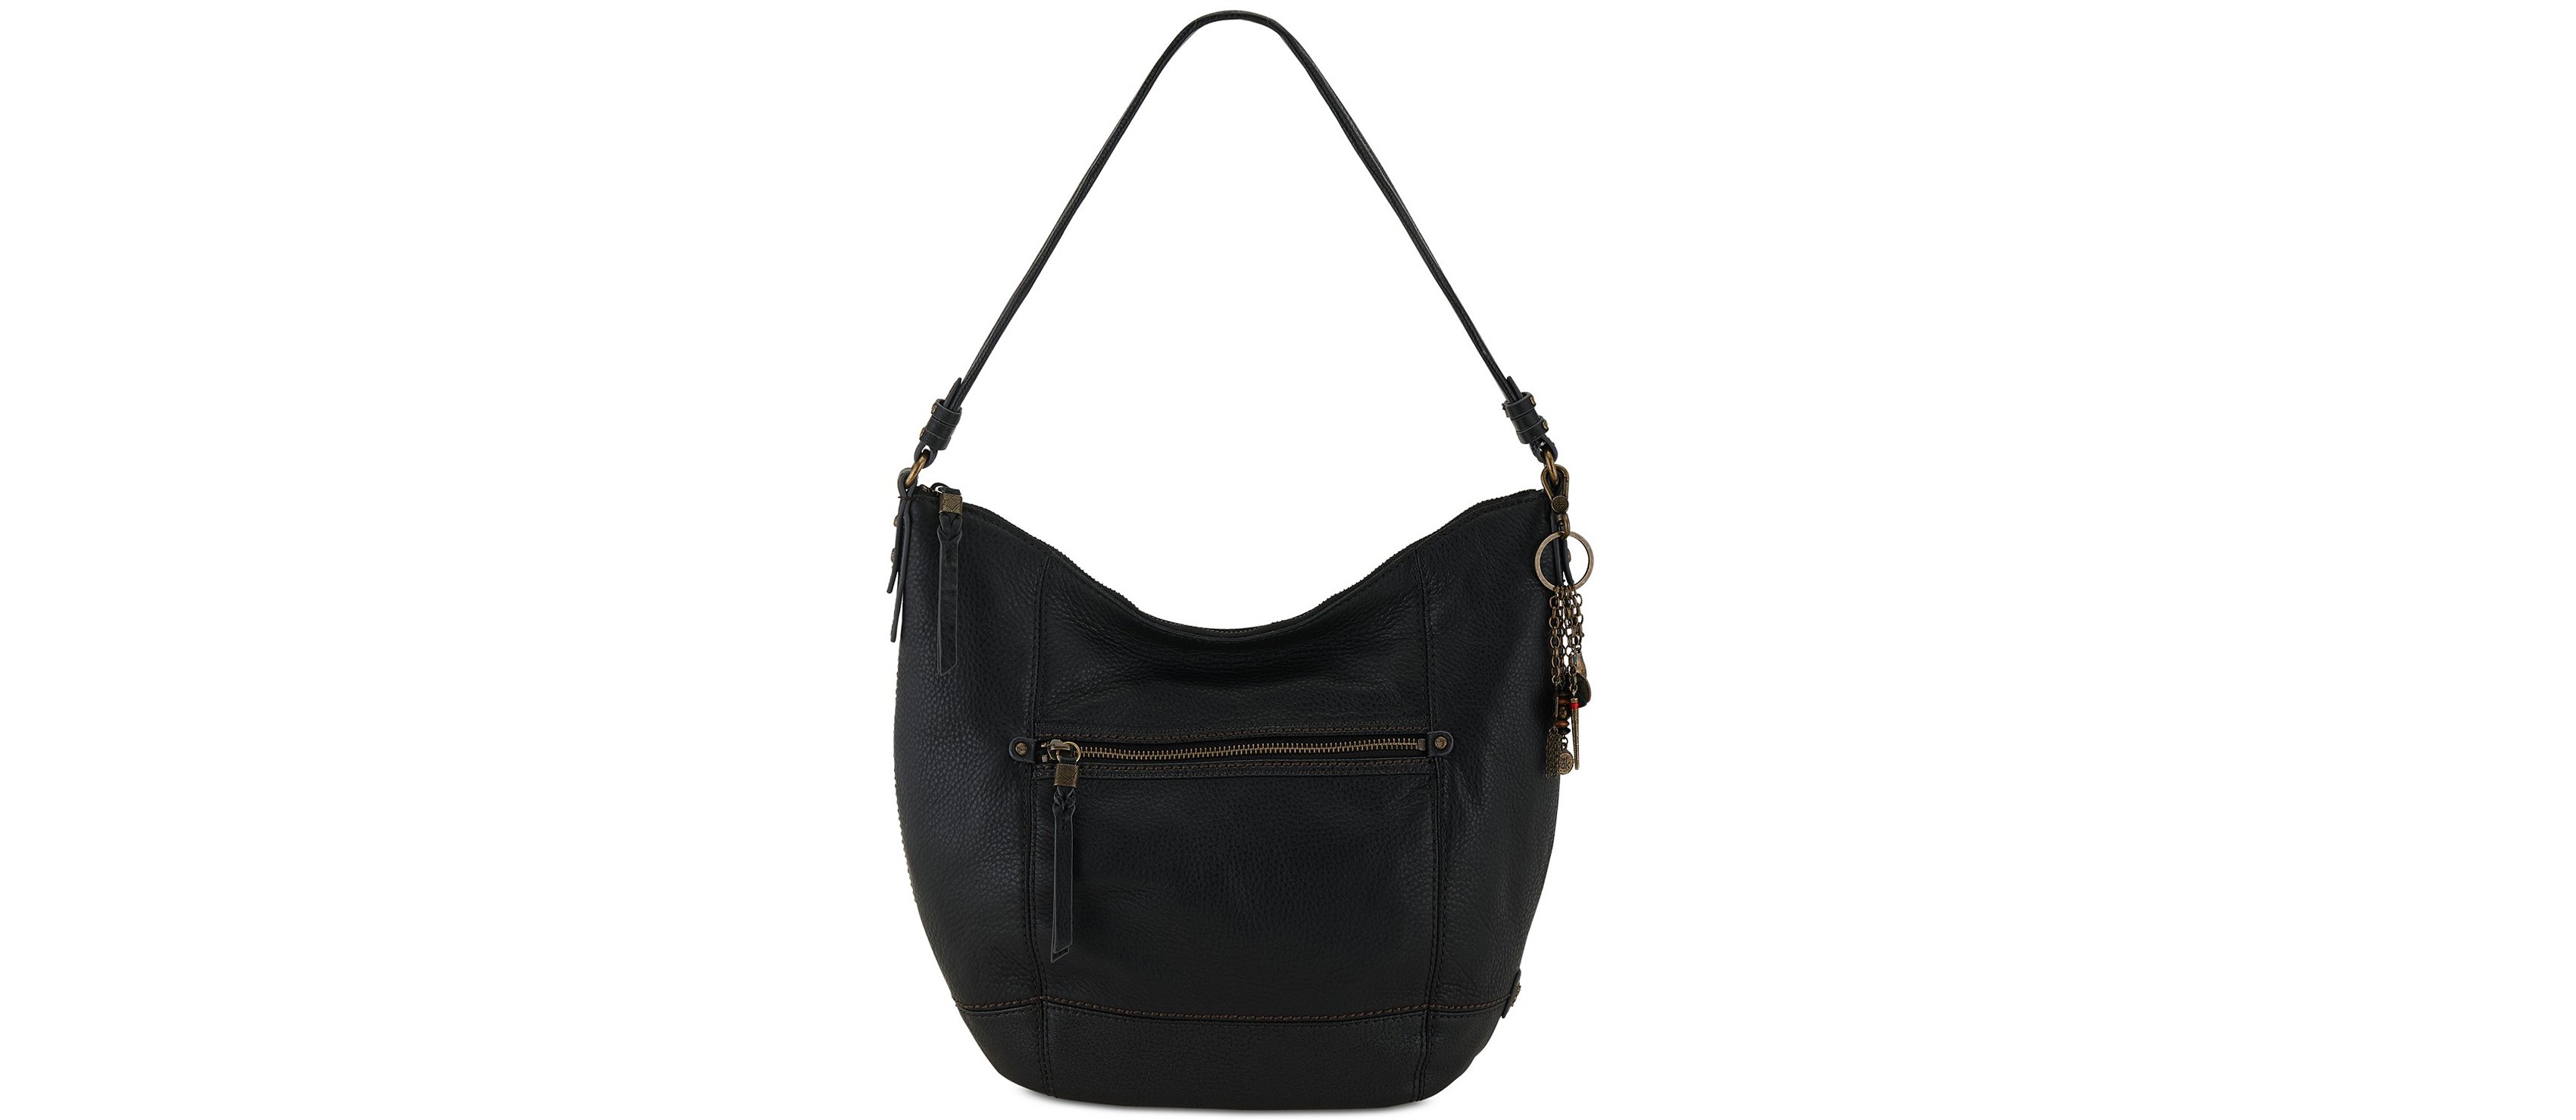 9dc5df624a This Purse Is The Chicest Anti-Theft Bag Style and It's on Sale for Under  $100